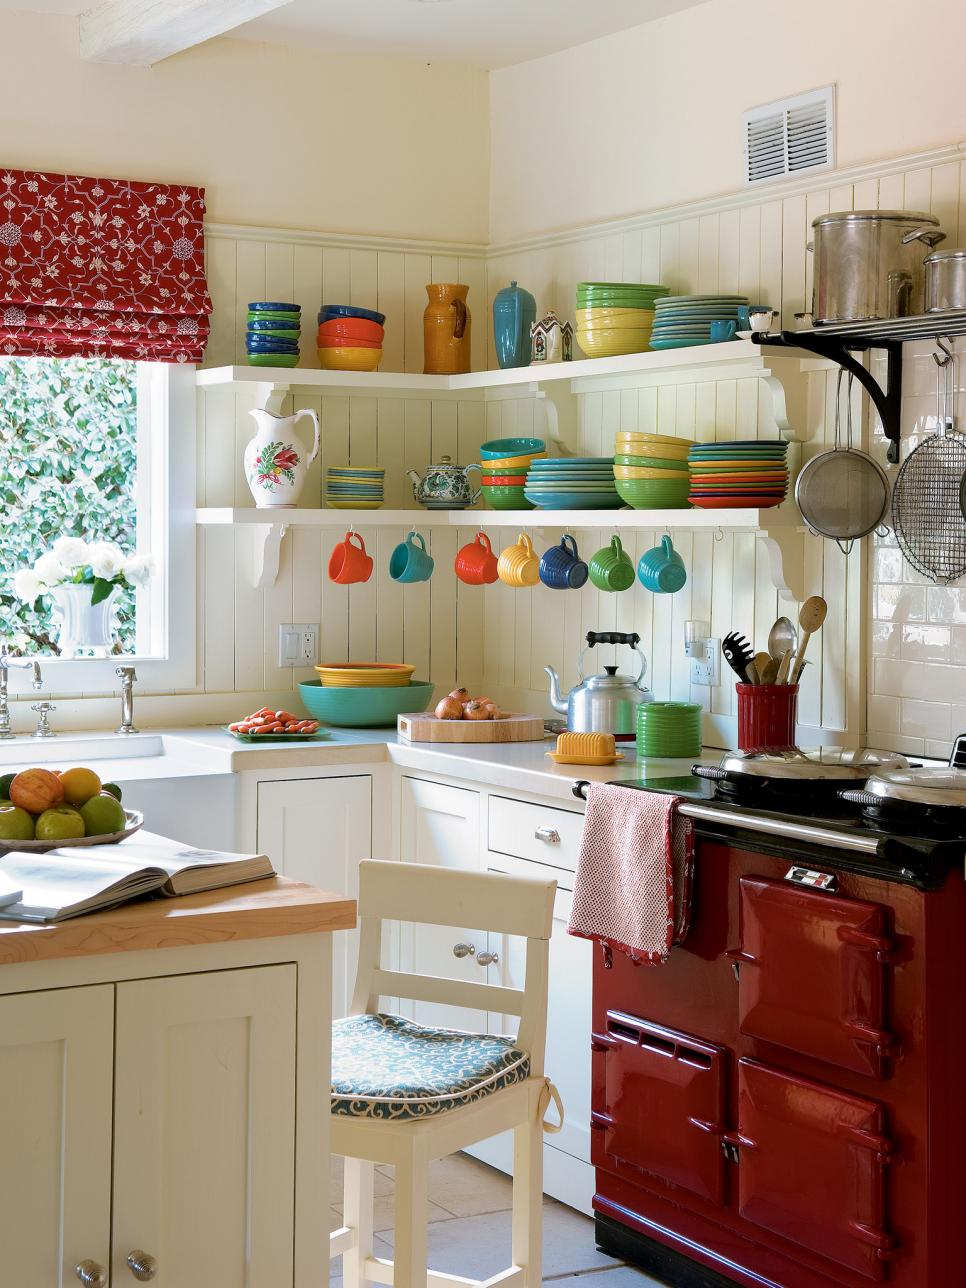 small kitchen ideas pictures of small kitchen design ideas from hgtv | hgtv JCYAXIE